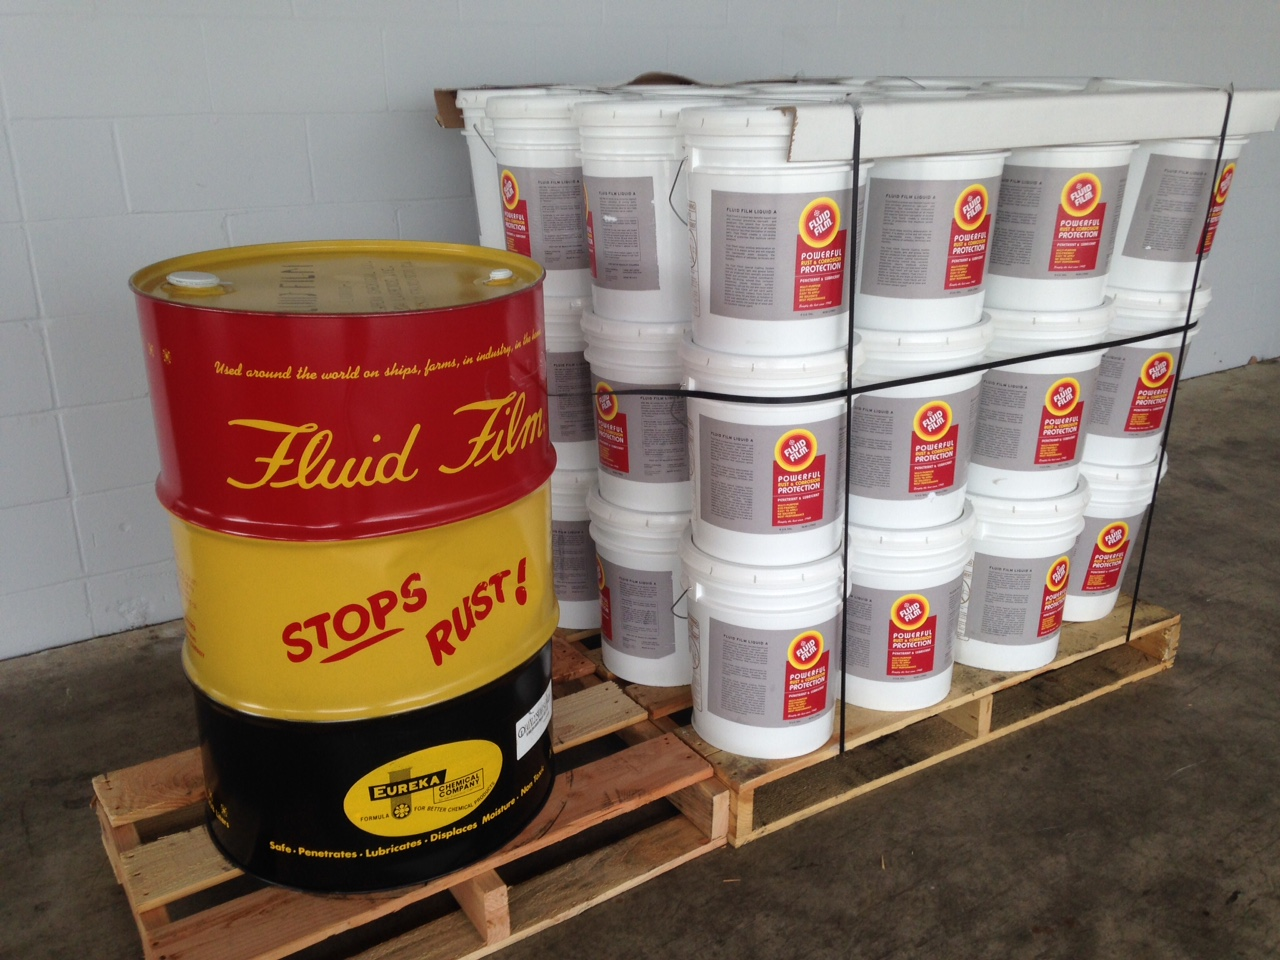 Fluid Film, 55 gal, drum, fluid film, lubricant, eco friendly, rust, powerful, corrosion, protection, penetrant, multi-purpose, eco-friendly, easy apply, no solvents, protects, all metals, non-toxic, hazardous, long lasting, lanolin, factory direct, spray, can, drum, bin, pallet, bulk, gallon, manufacturer rep, drop ship, aerosol, environmental friendly